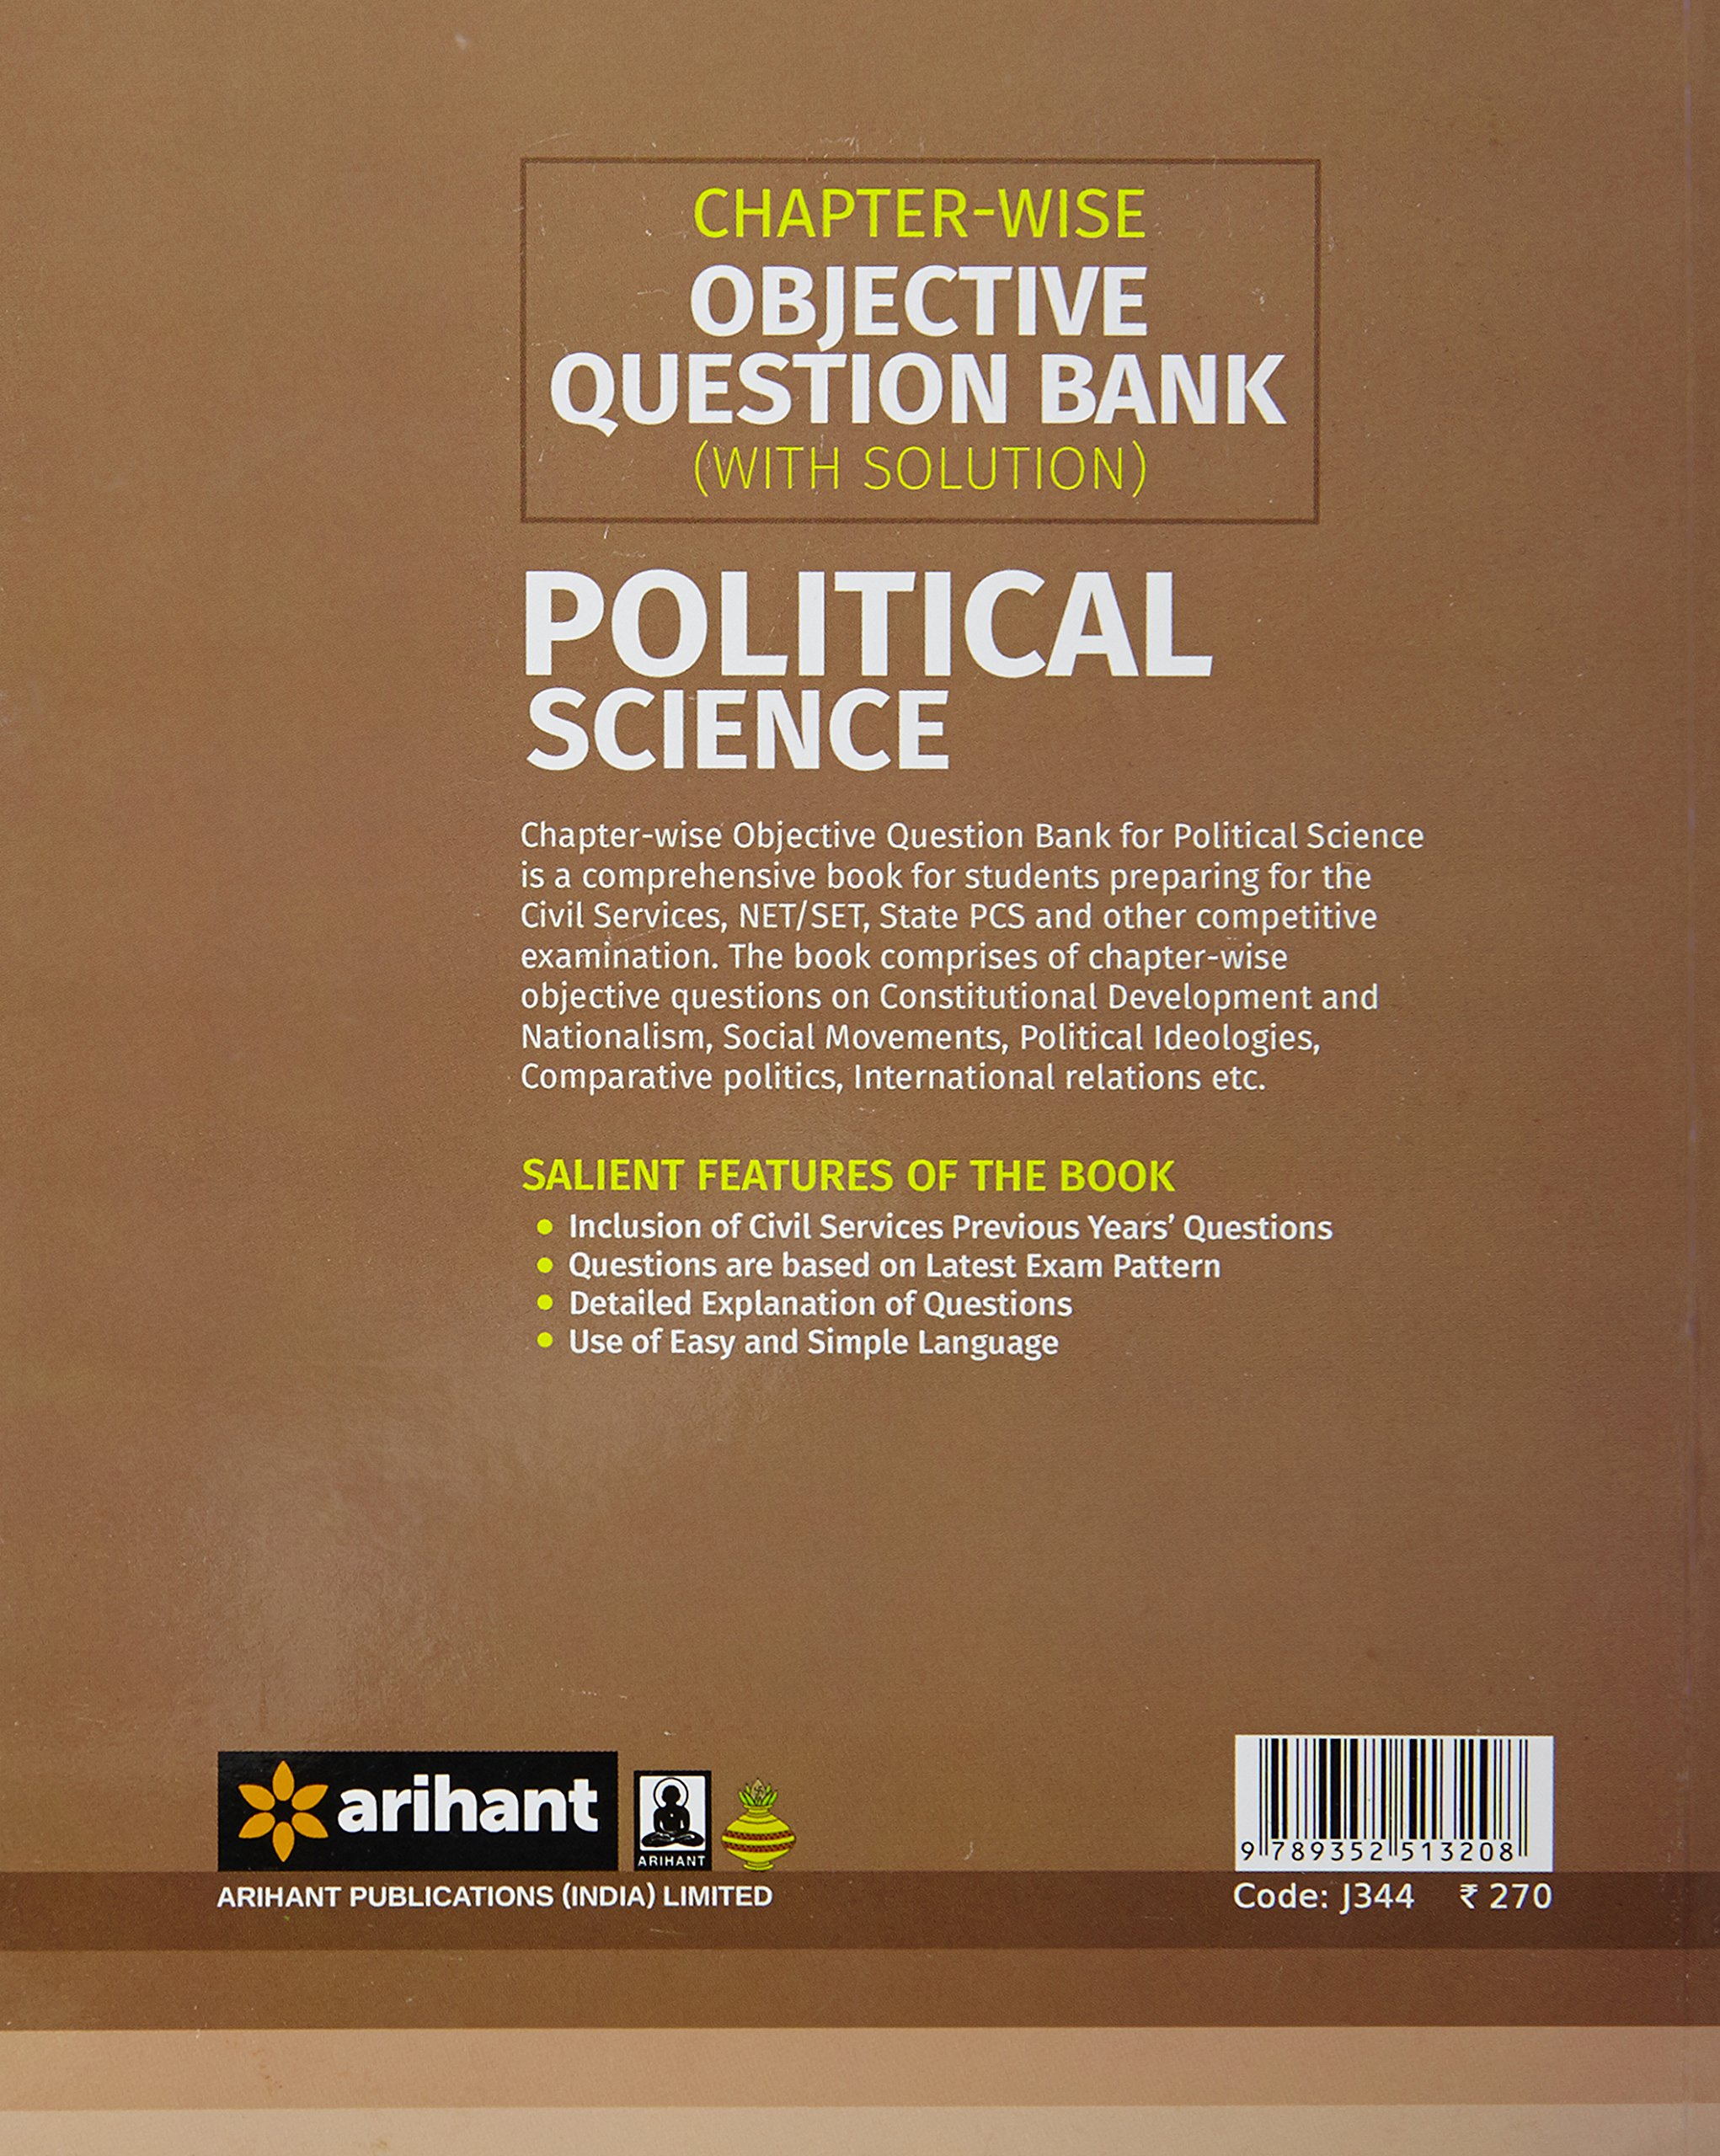 Buy Chapter-wise Objective Question Bank(With Solution) Poltical